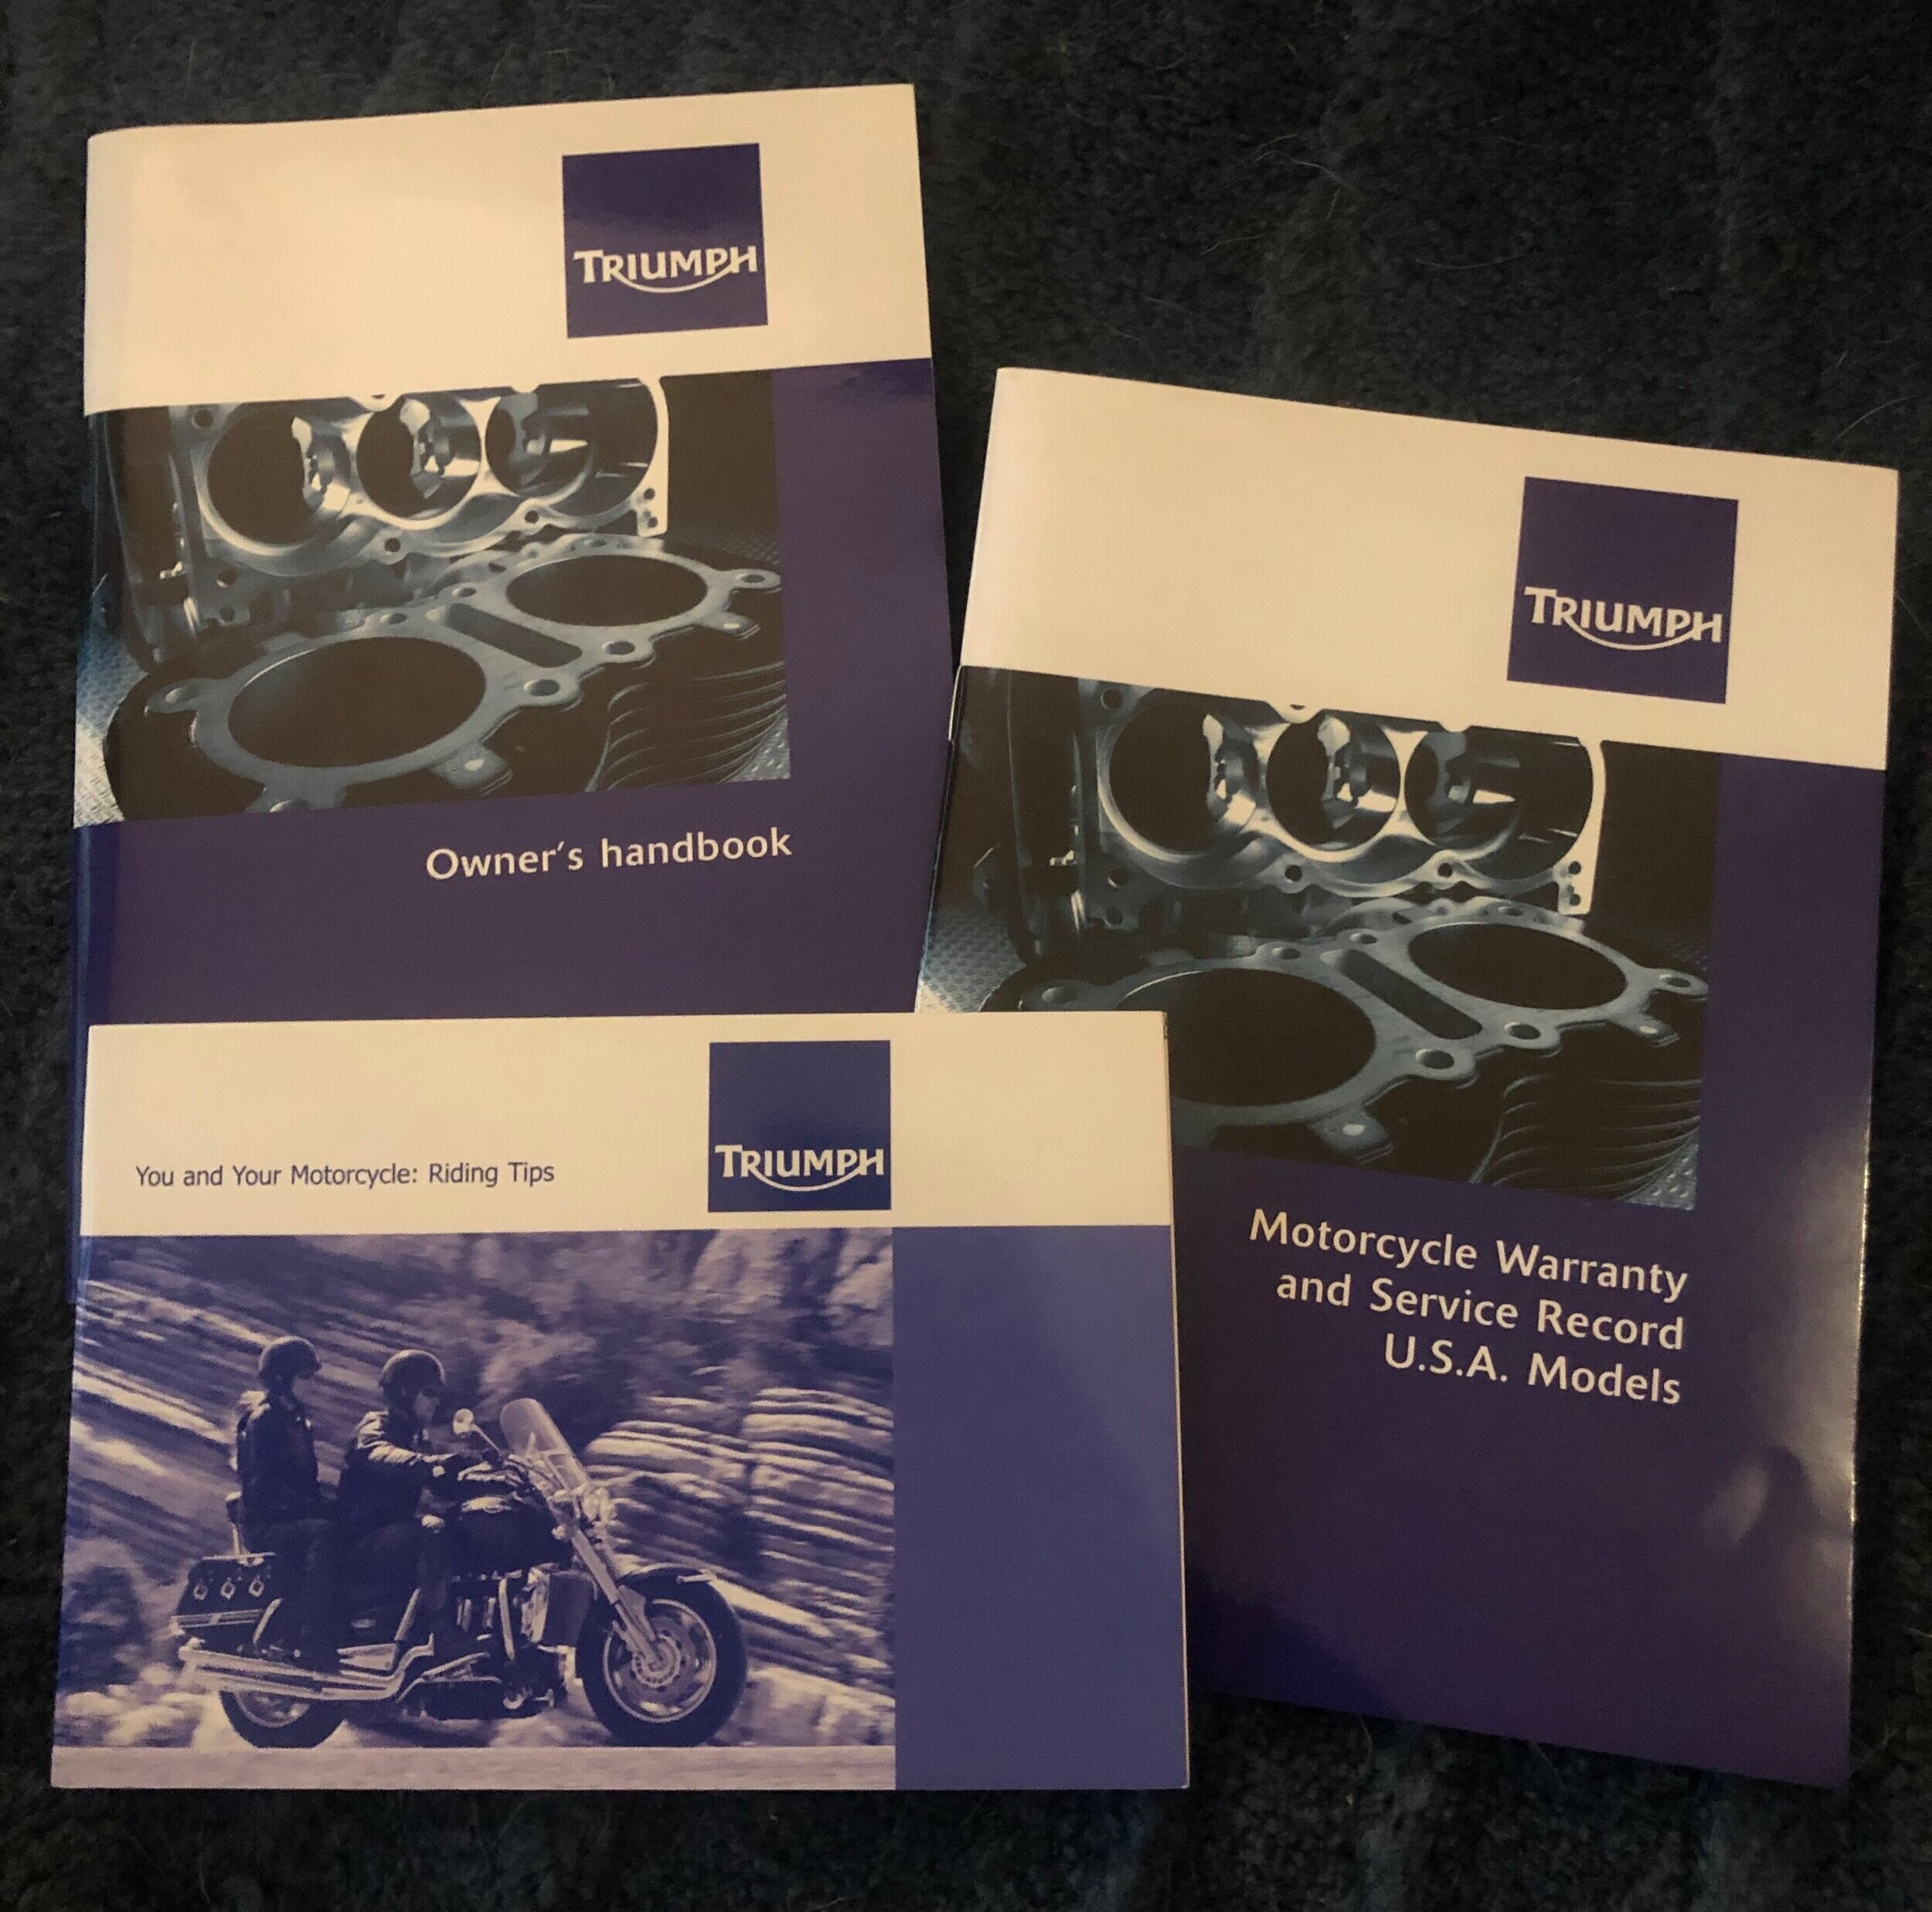 Mine came with 3 booklets: an Owners Handbook, Service Records Book and Riding Tips